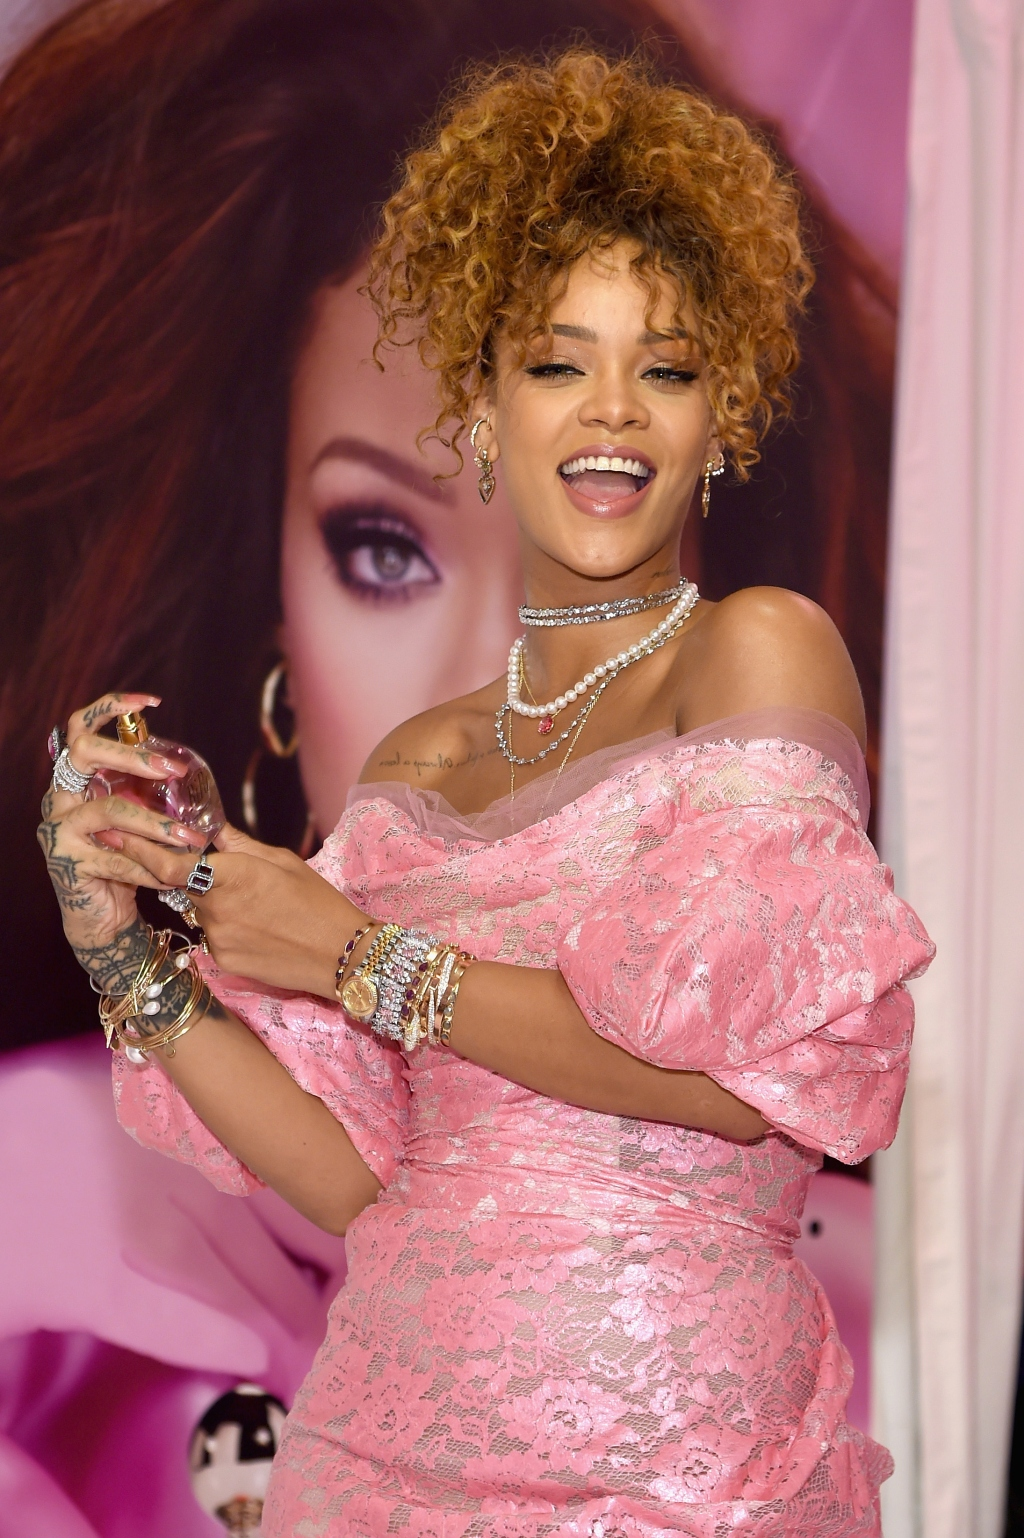 Rihanna at 'RiRi' launch in Brooklyn